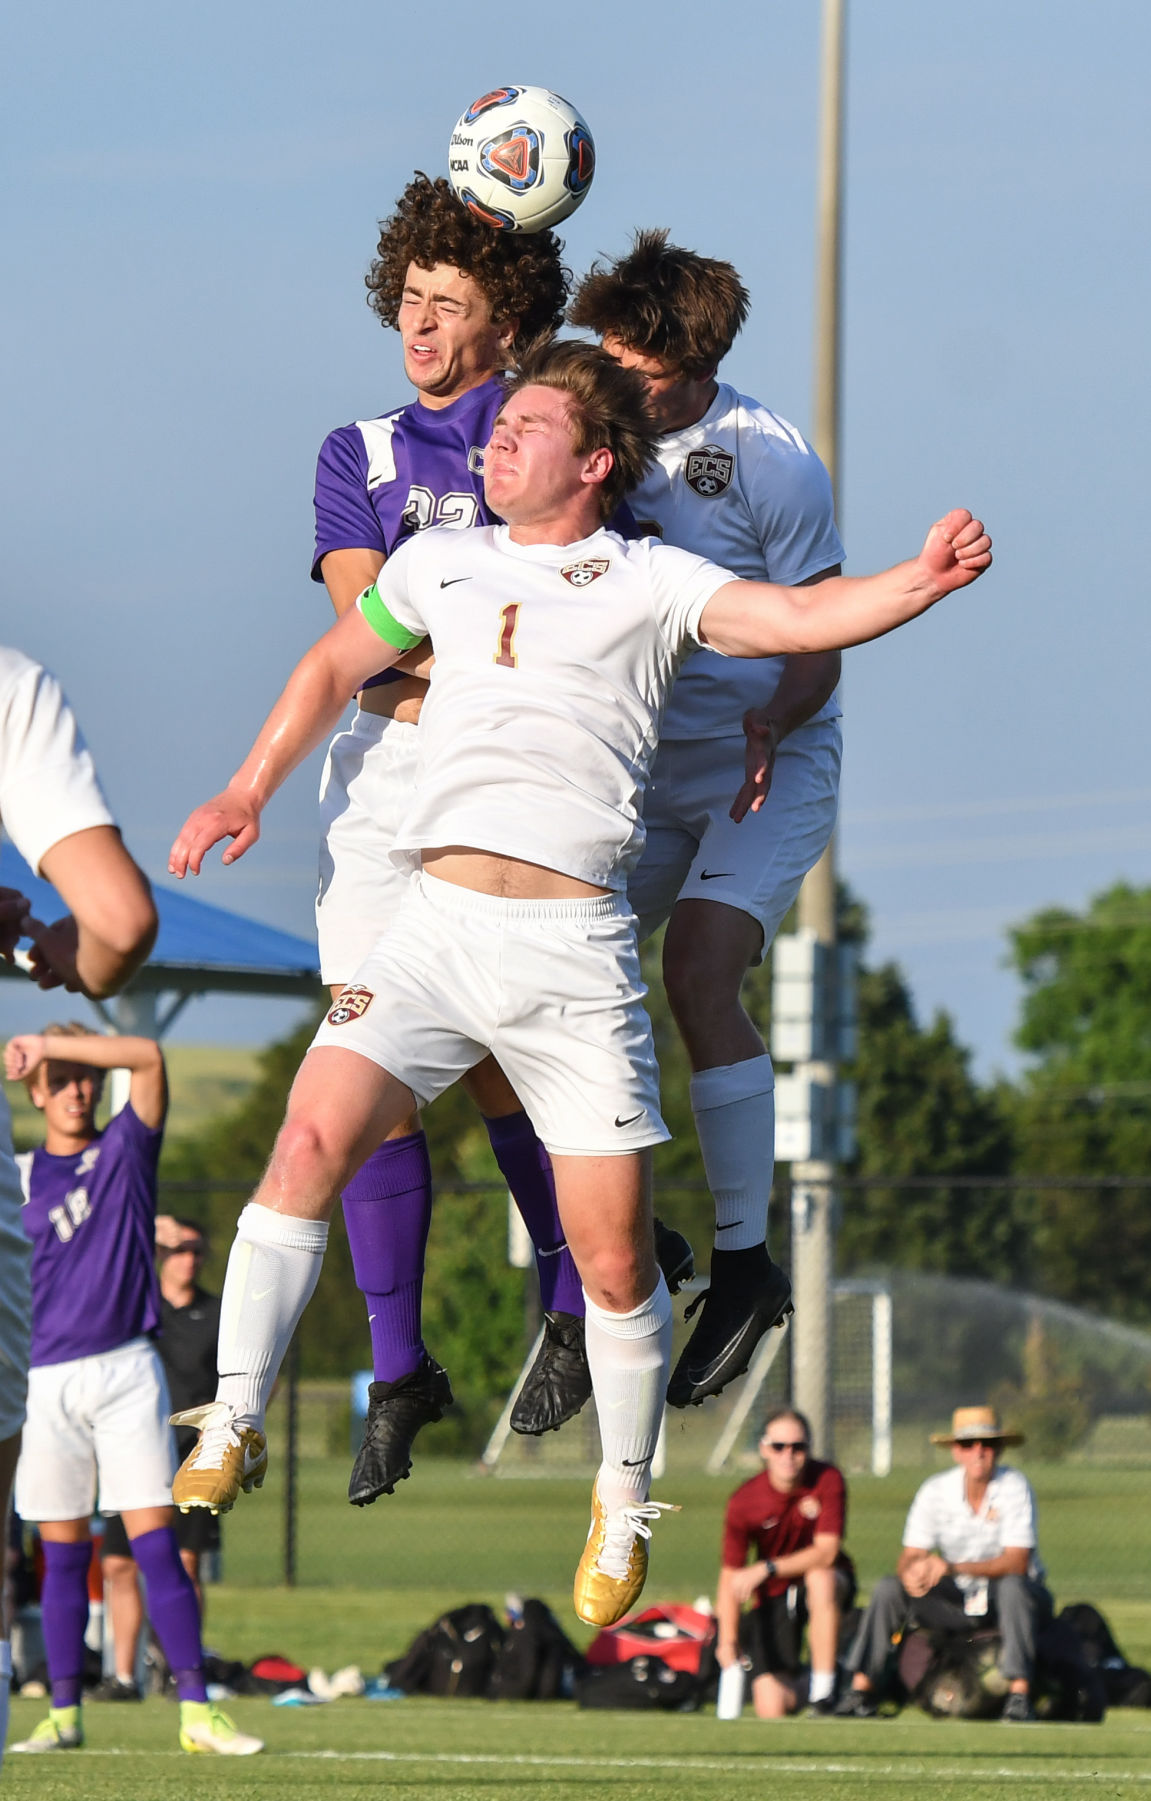 State Championship Soccer – CPA vs. ECS, Division II-A